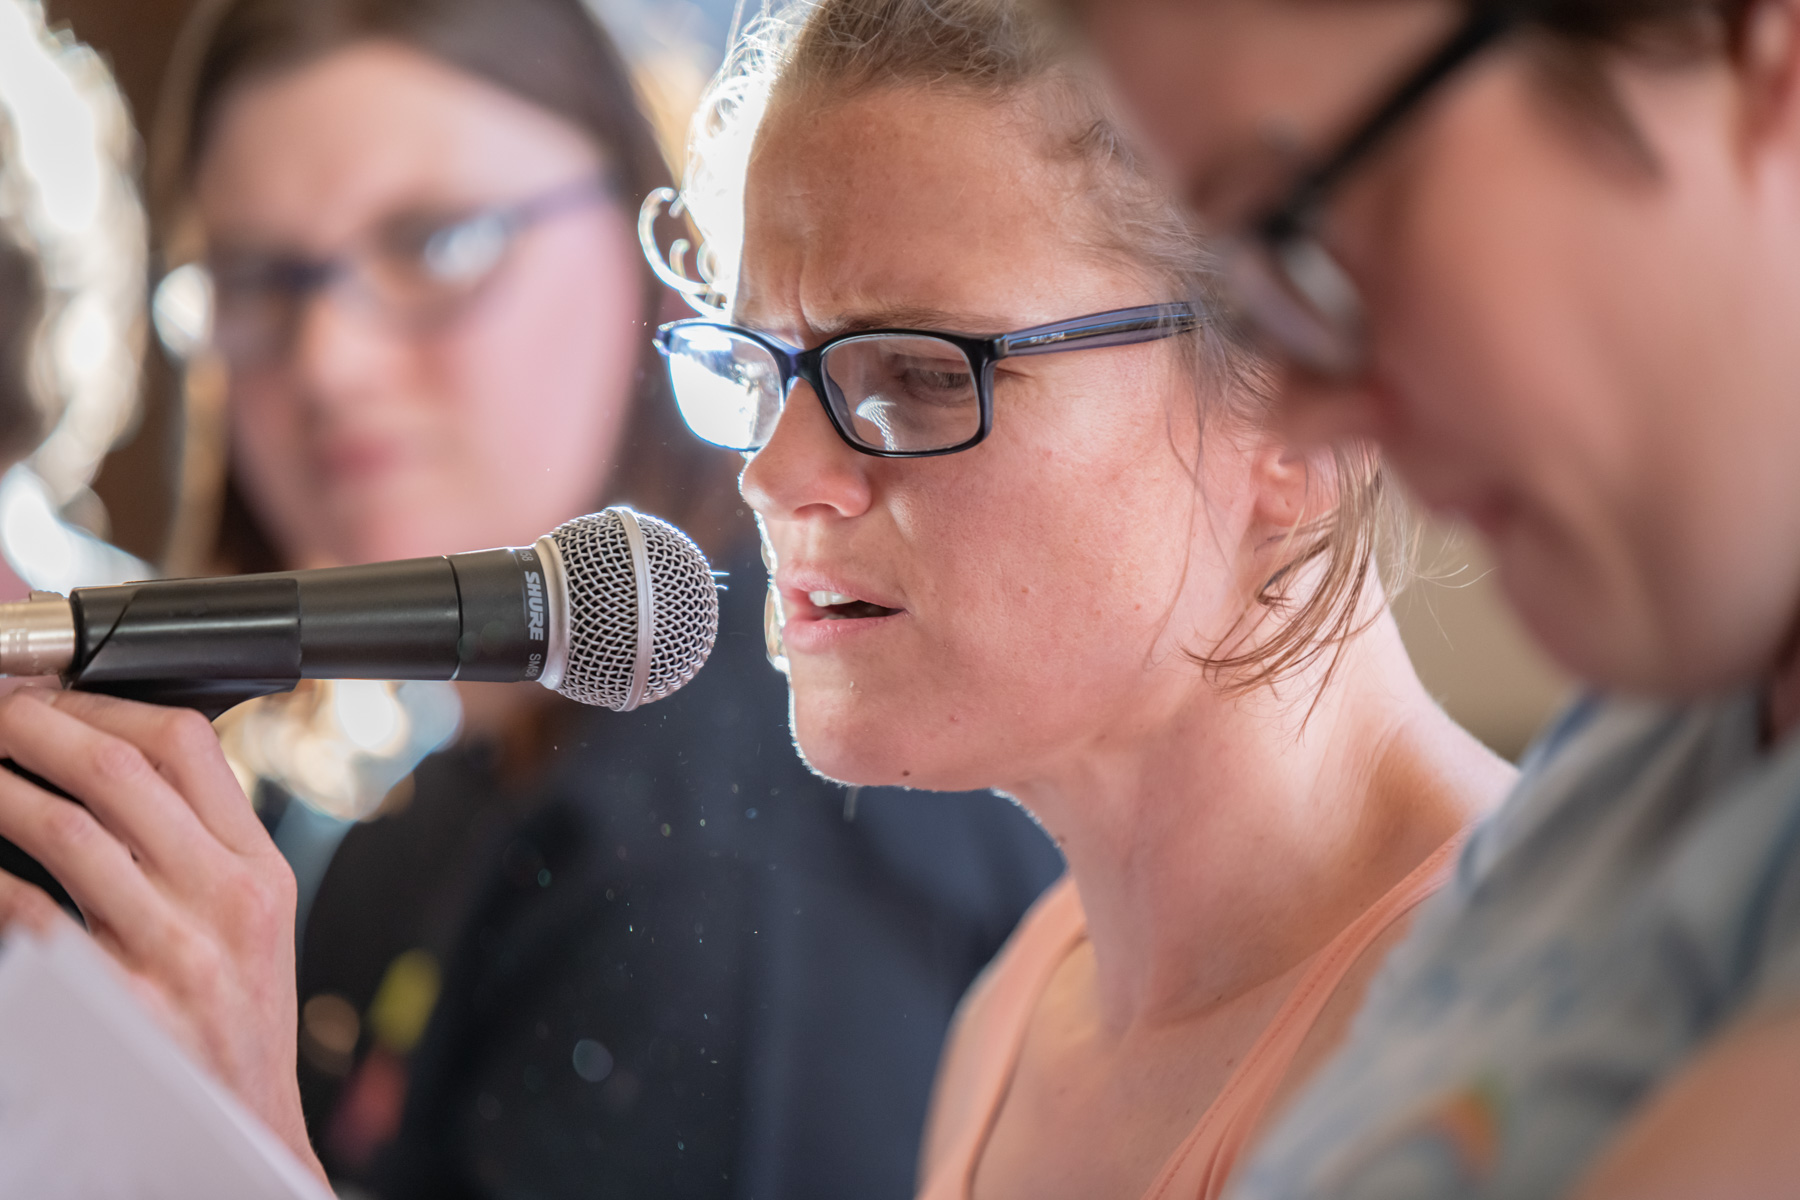 Woman in glasses speaks into microphone.